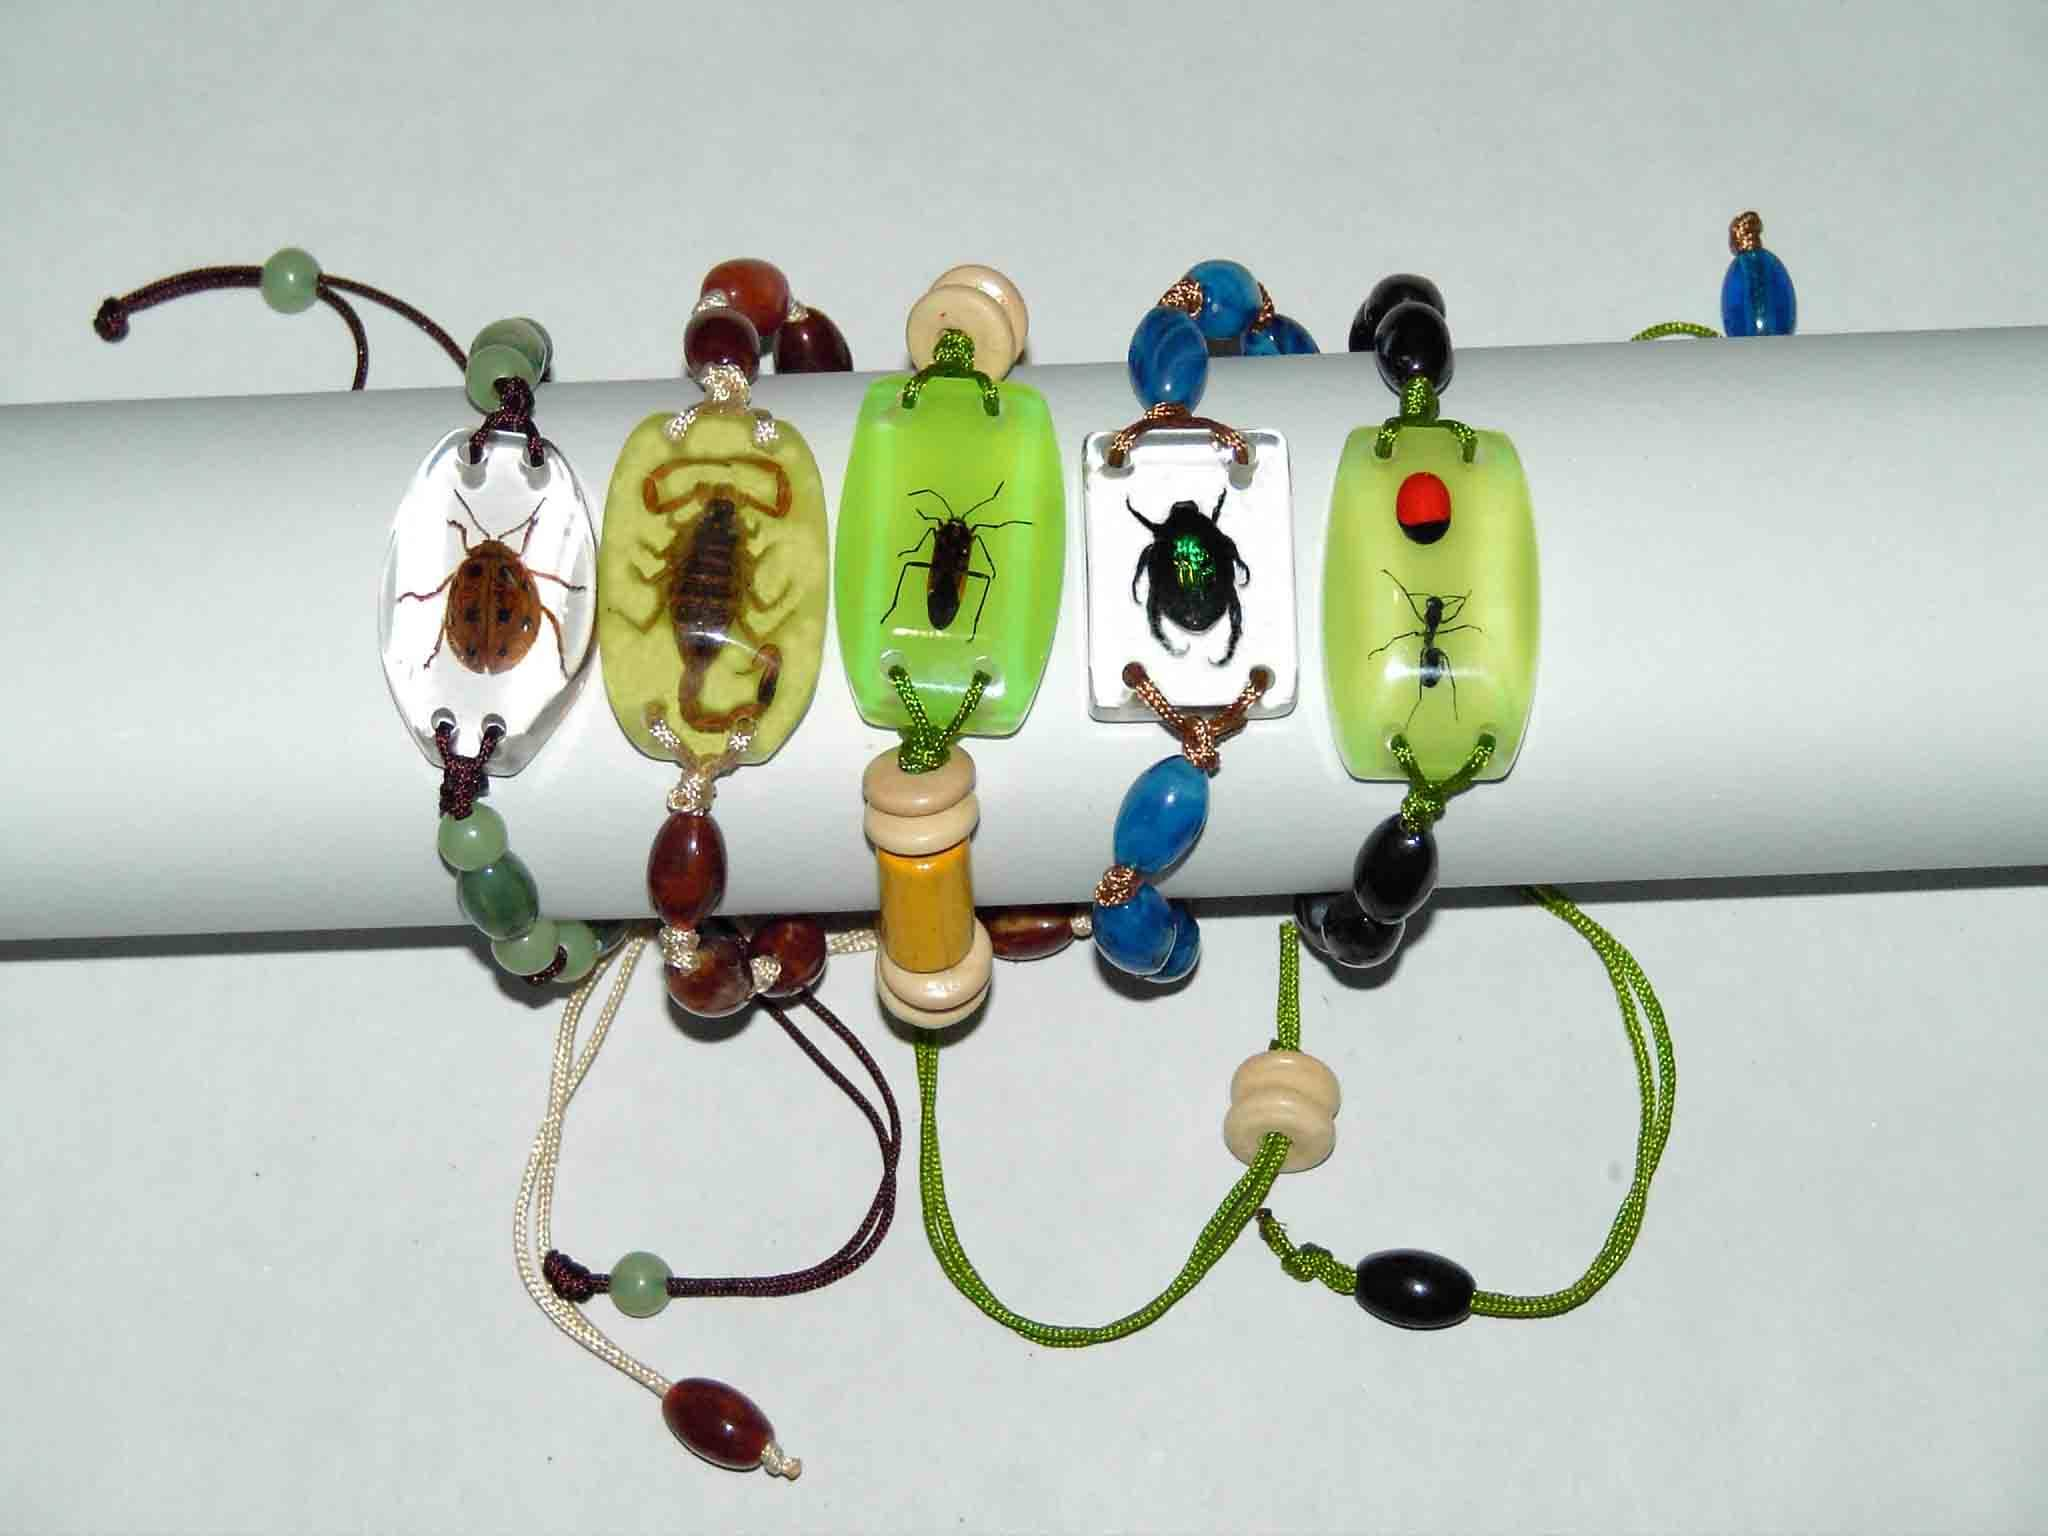 Insect Artificial Amber Decoration For Wrist Rings, Key Chains, Mobile Phone